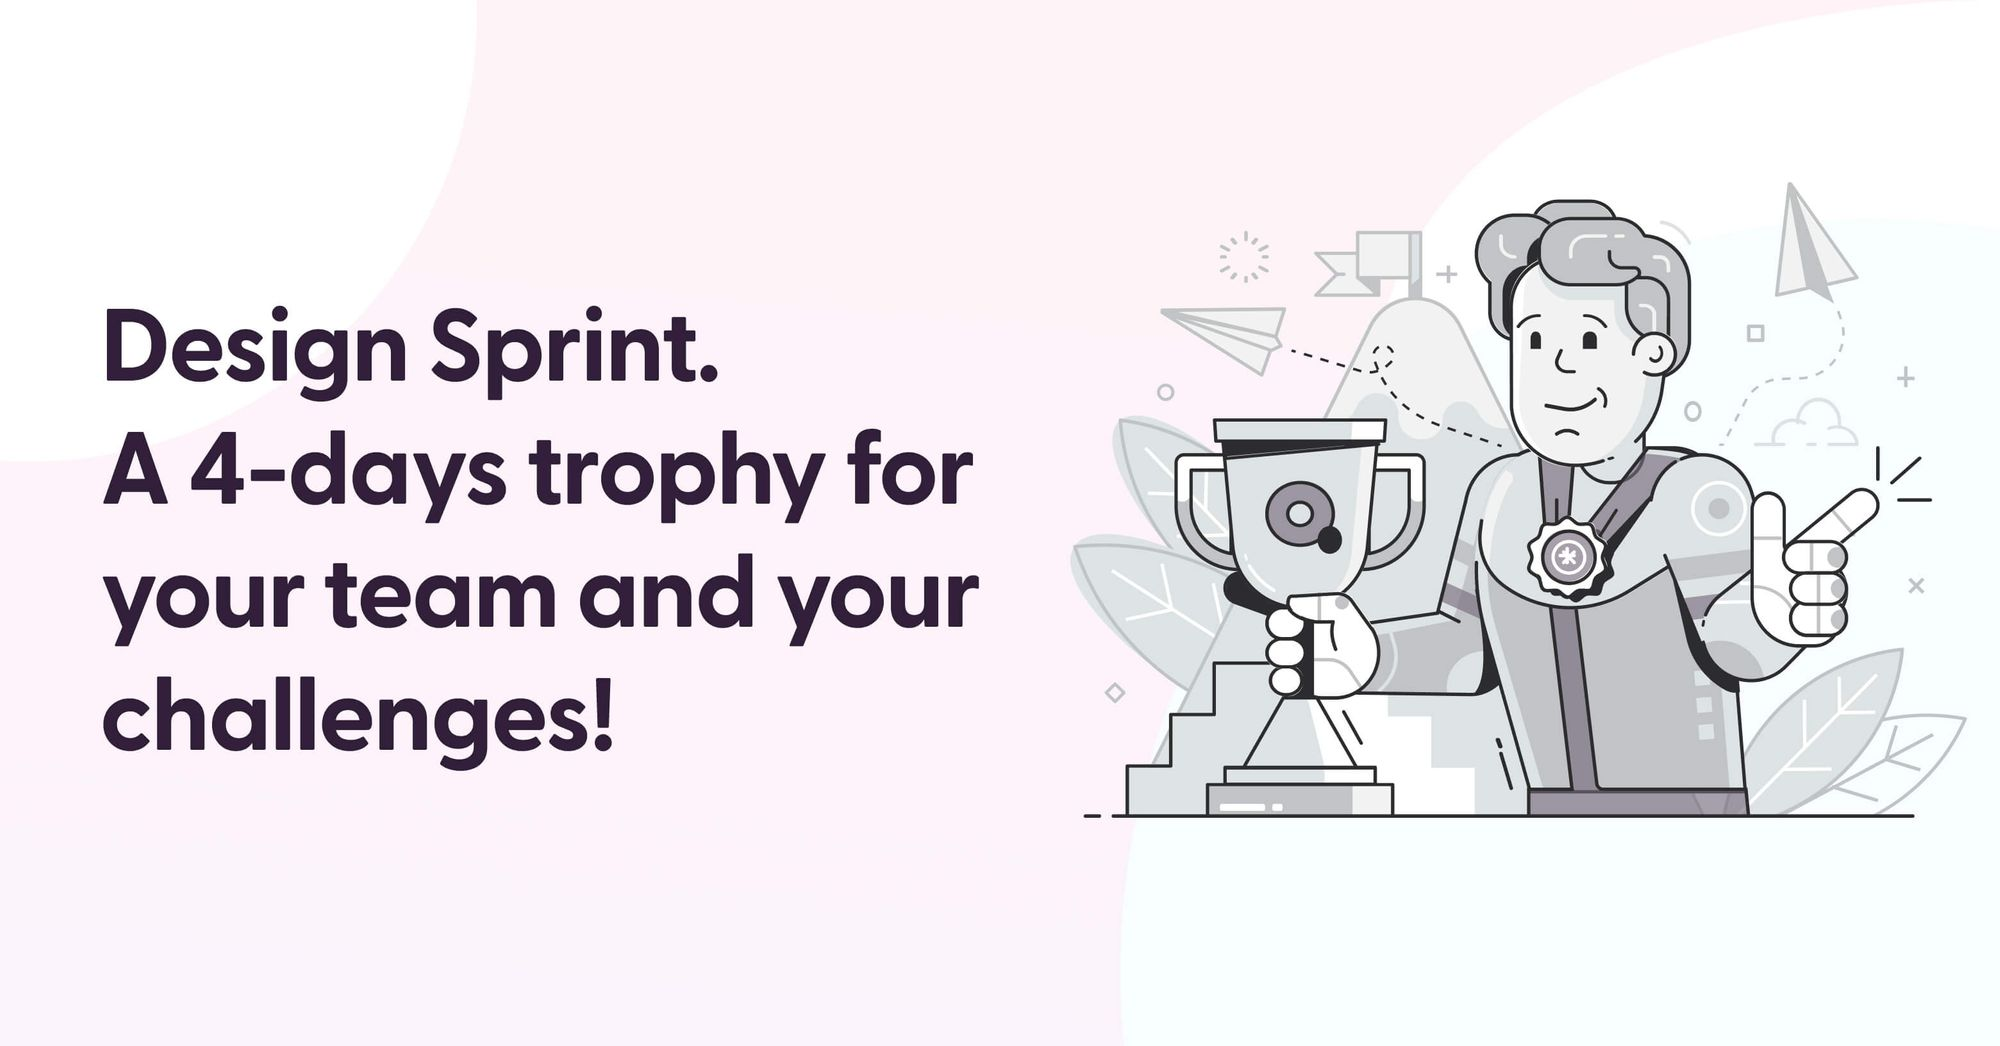 Design Sprint: the challenges and the results